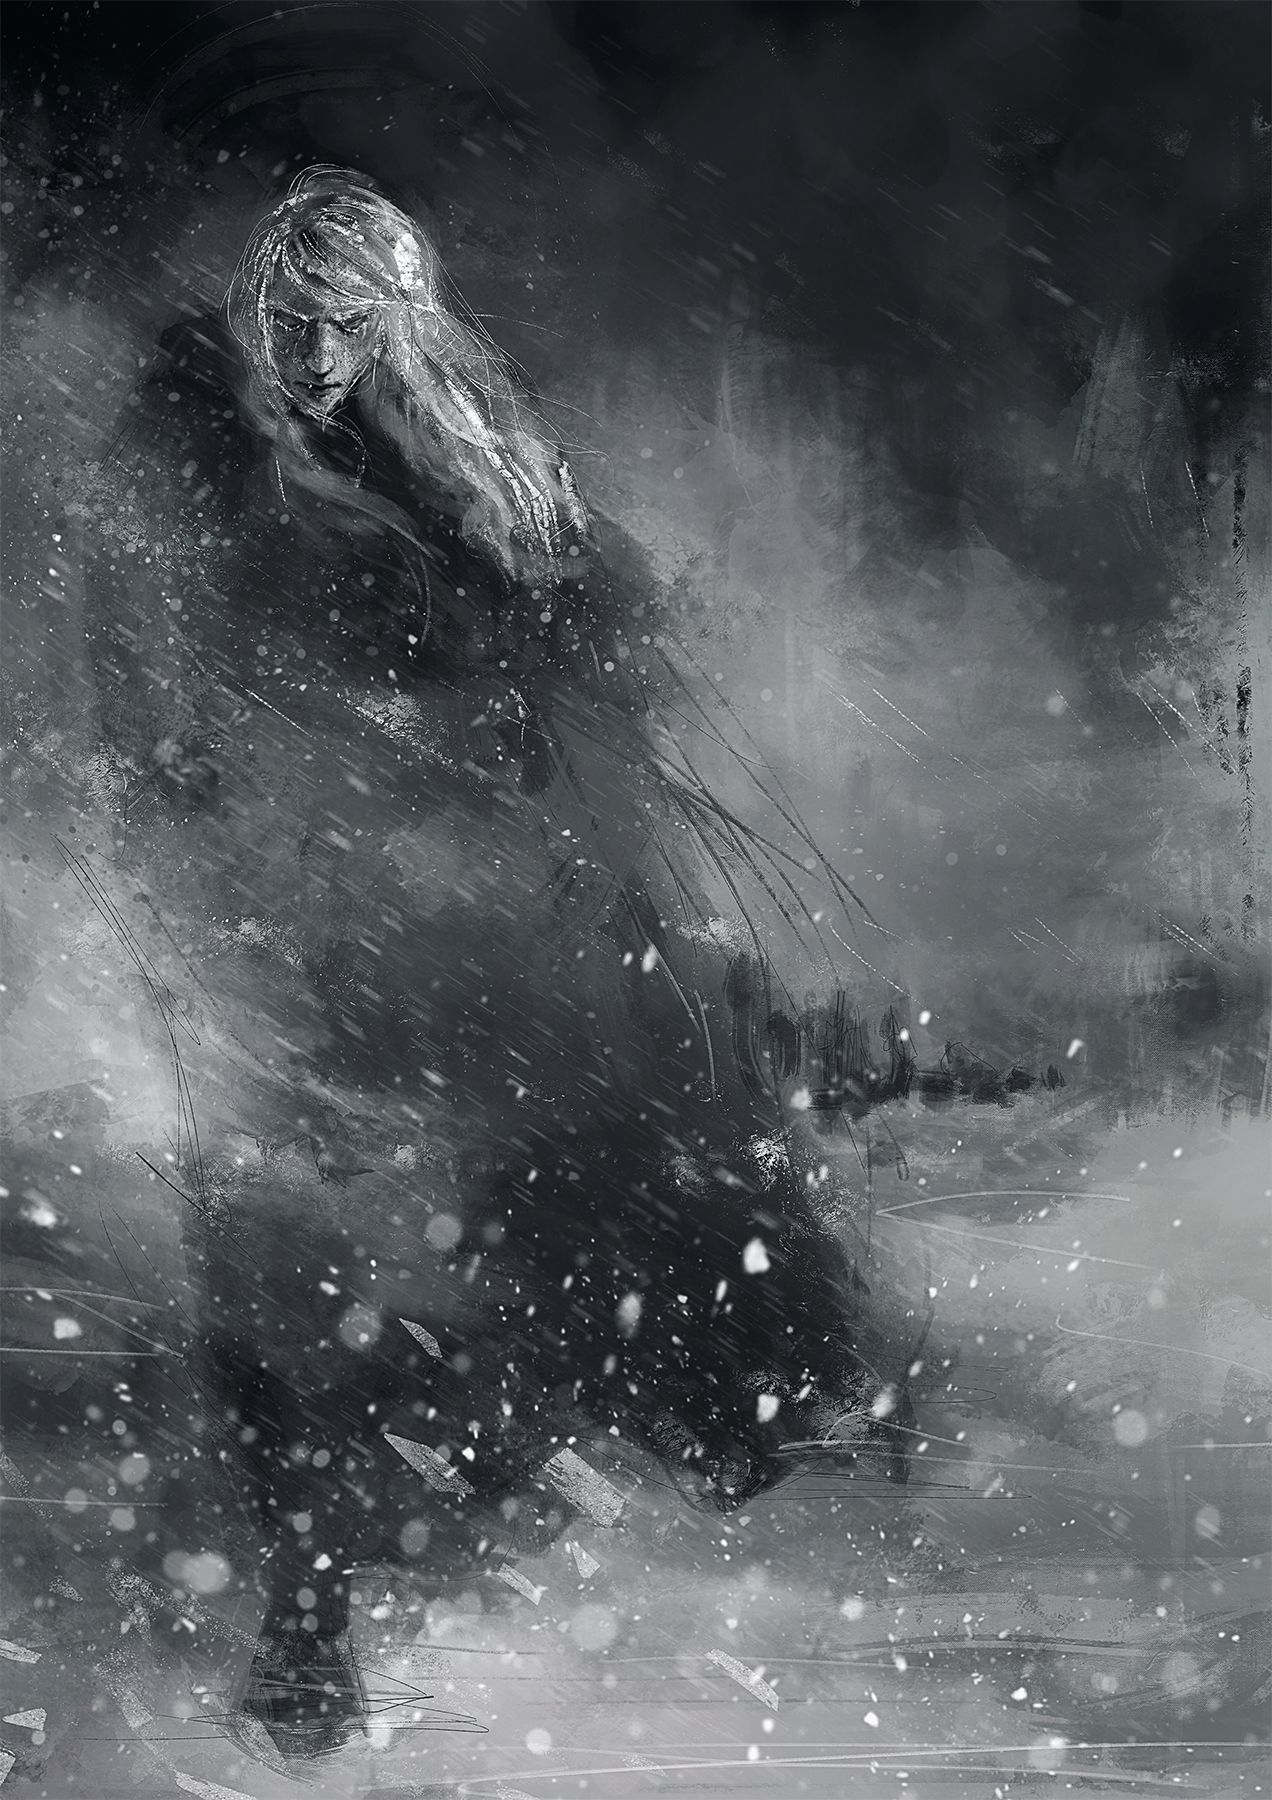 Finrod crossing the Helcaraxë Fighting a mild form...